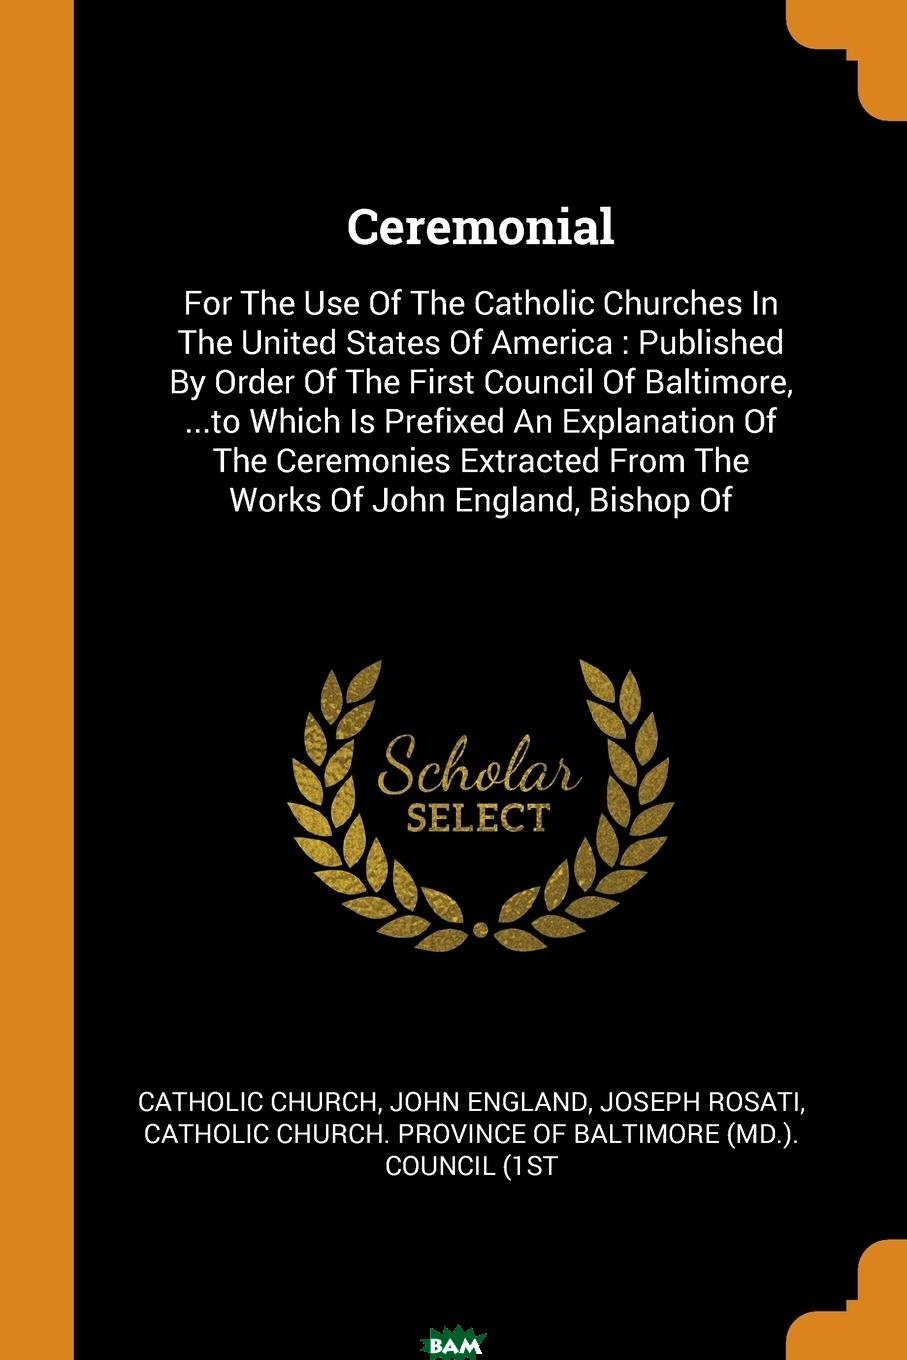 Купить Ceremonial. For The Use Of The Catholic Churches In The United States Of America : Published By Order Of The First Council Of Baltimore, ...to Which Is Prefixed An Explanation Of The Ceremonies Extra, Catholic Church, John England, Joseph Rosati, 9780353385924